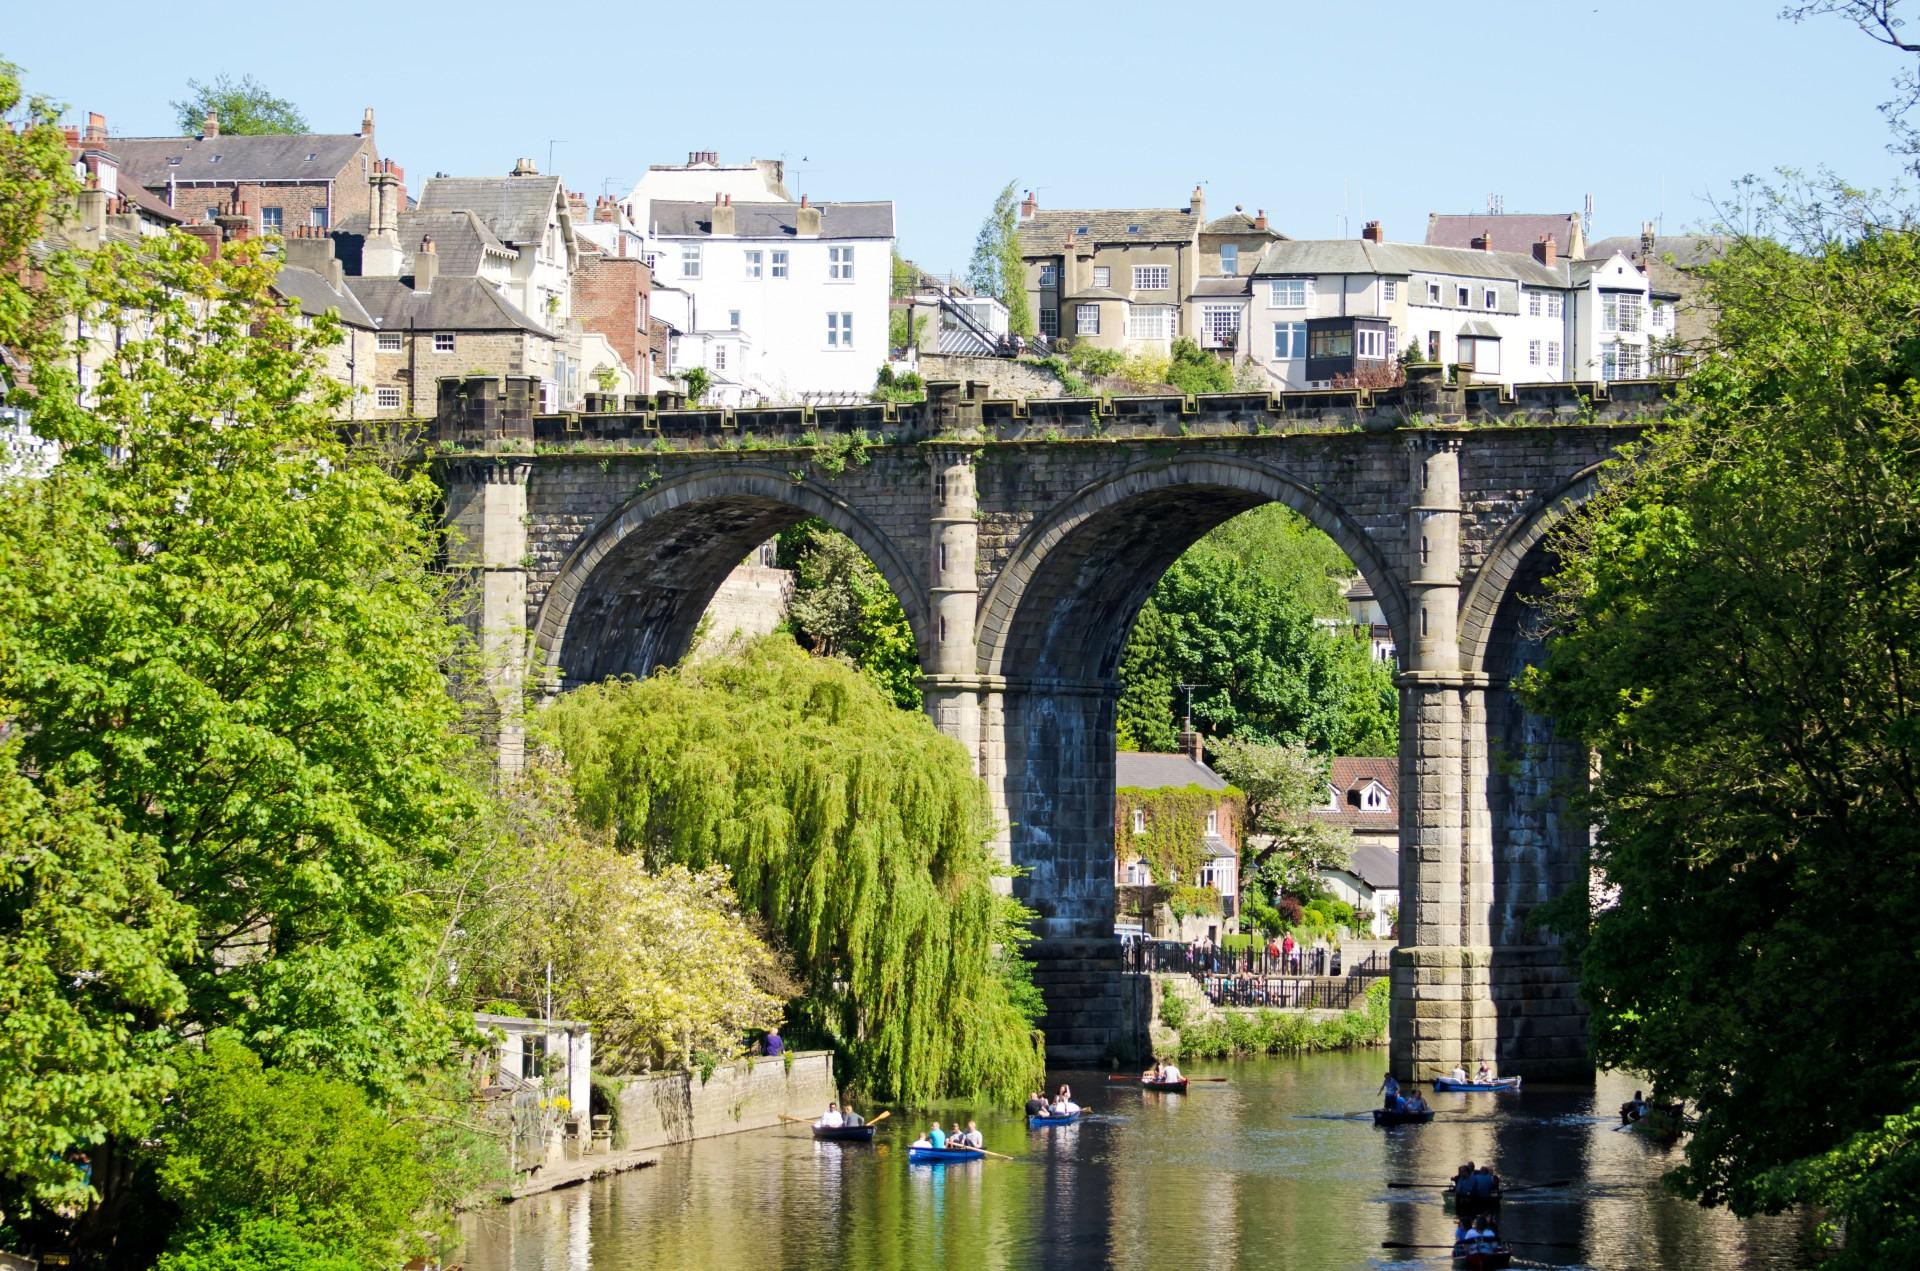 Knaresborough Camping | Campsites in Knaresborough, North Yorkshire